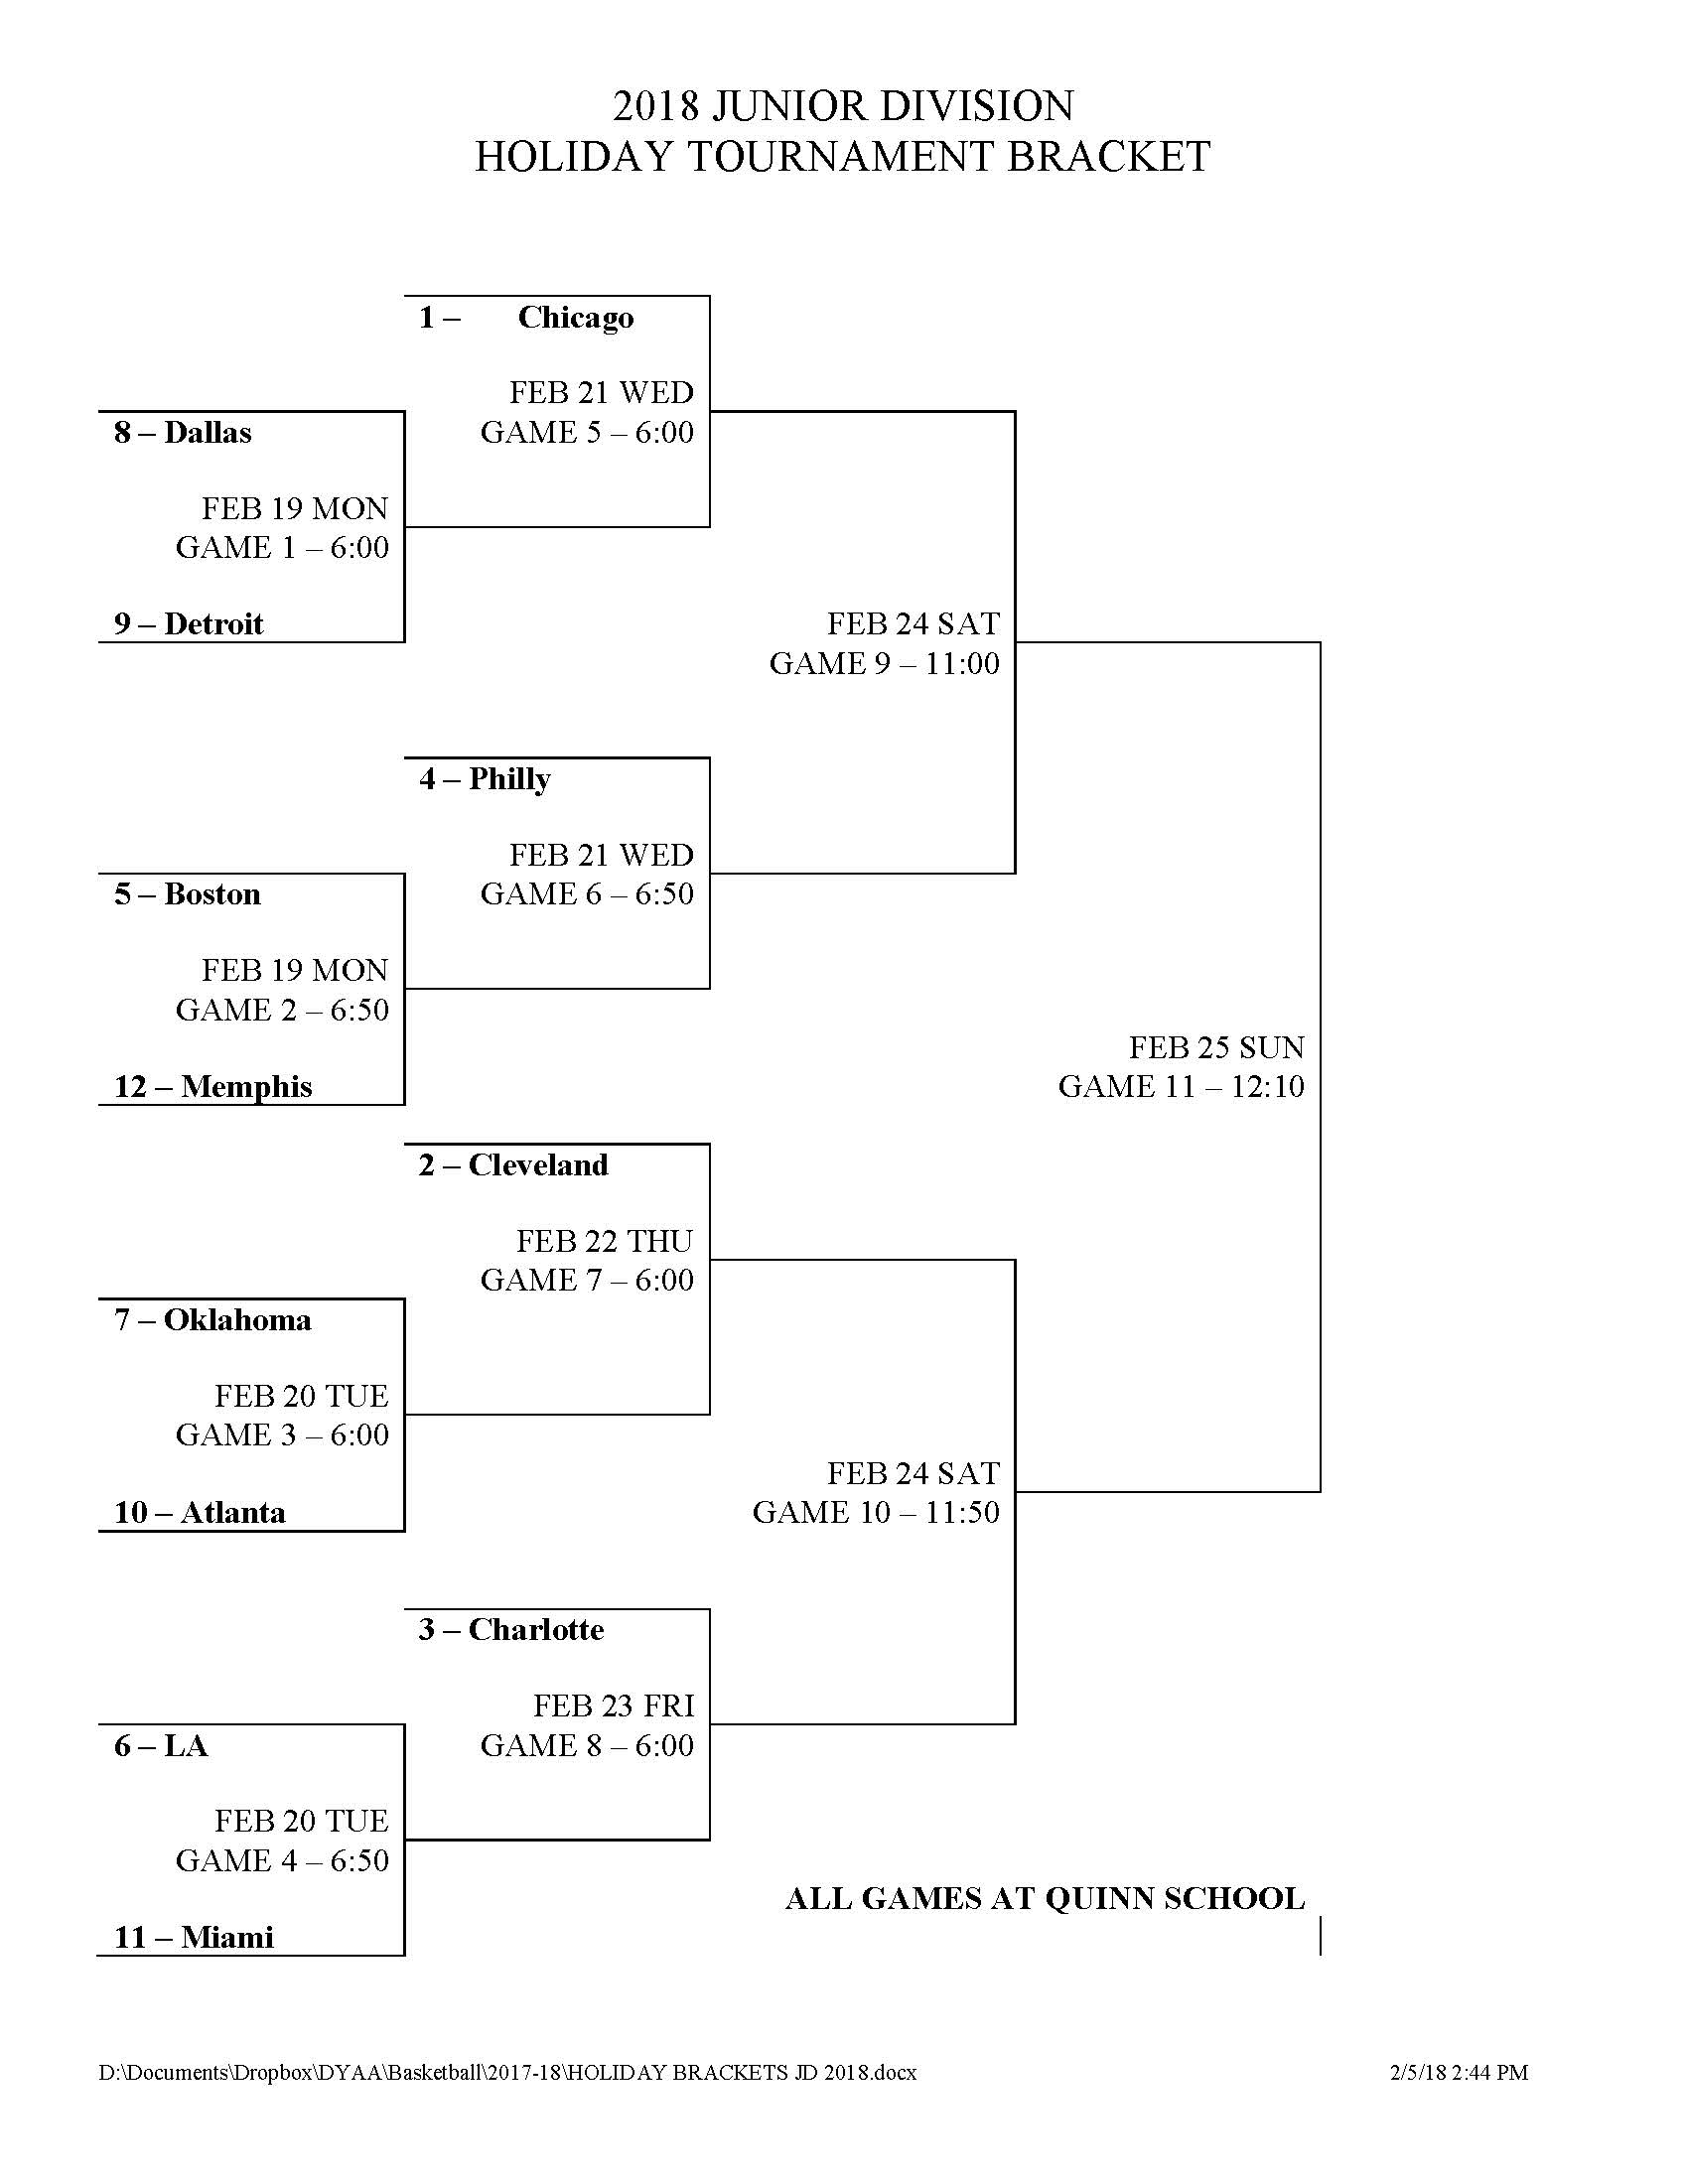 Holiday tournament dyaa junior division brackets pooptronica Image collections